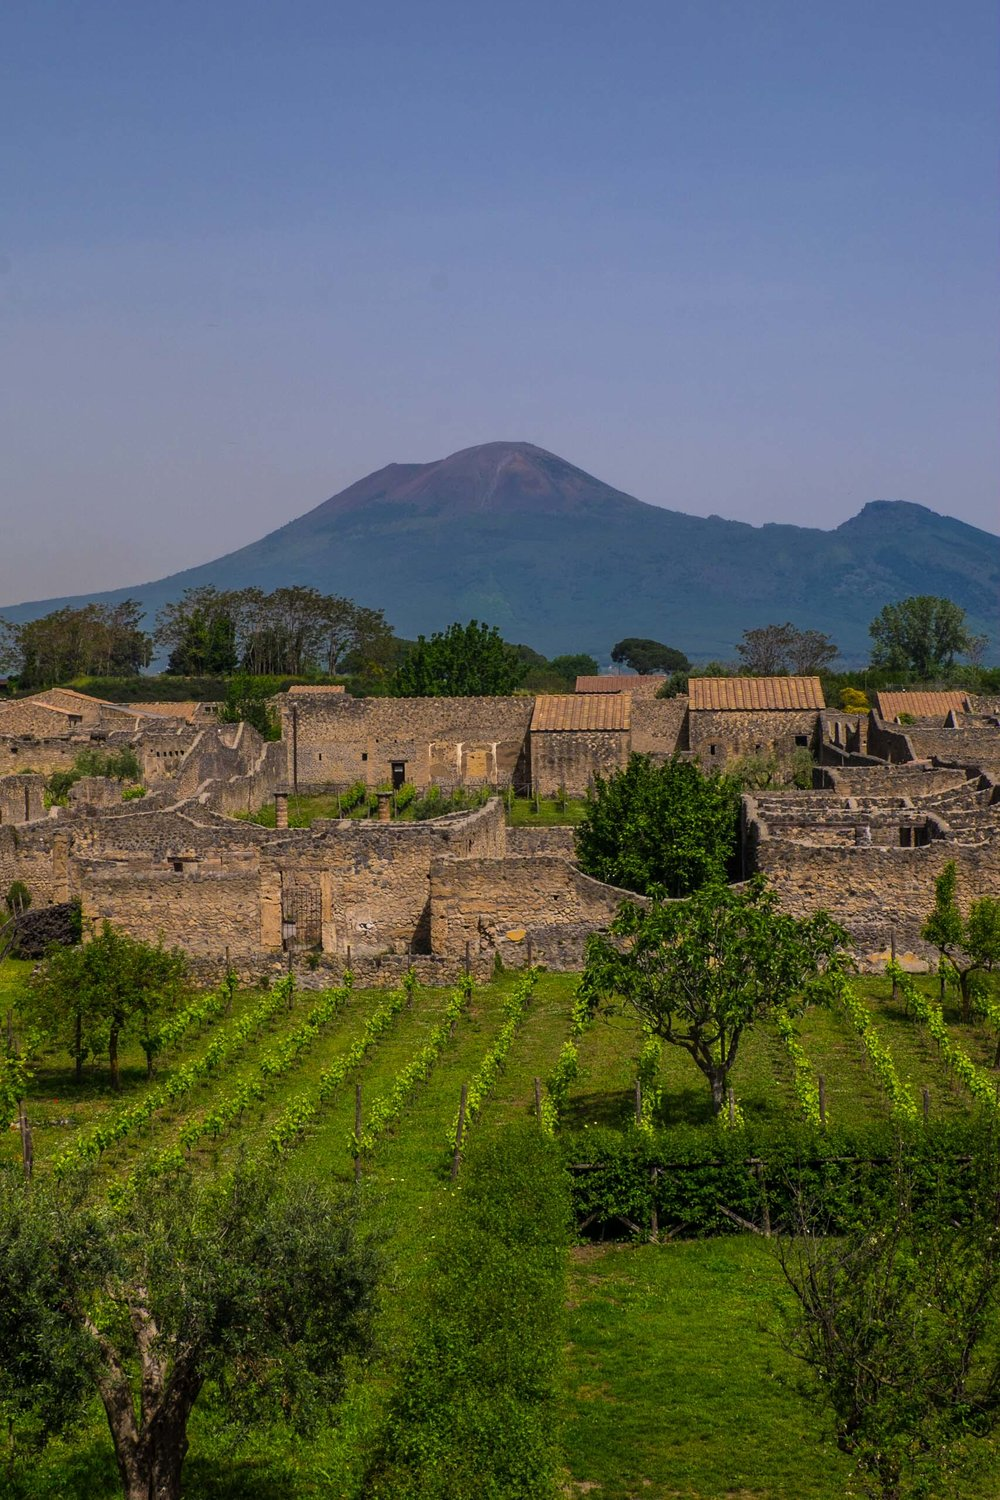 Roman vineyards in Pompeii, Vesuvius in rear |  ©John Szabo (published by Jacqui Small)